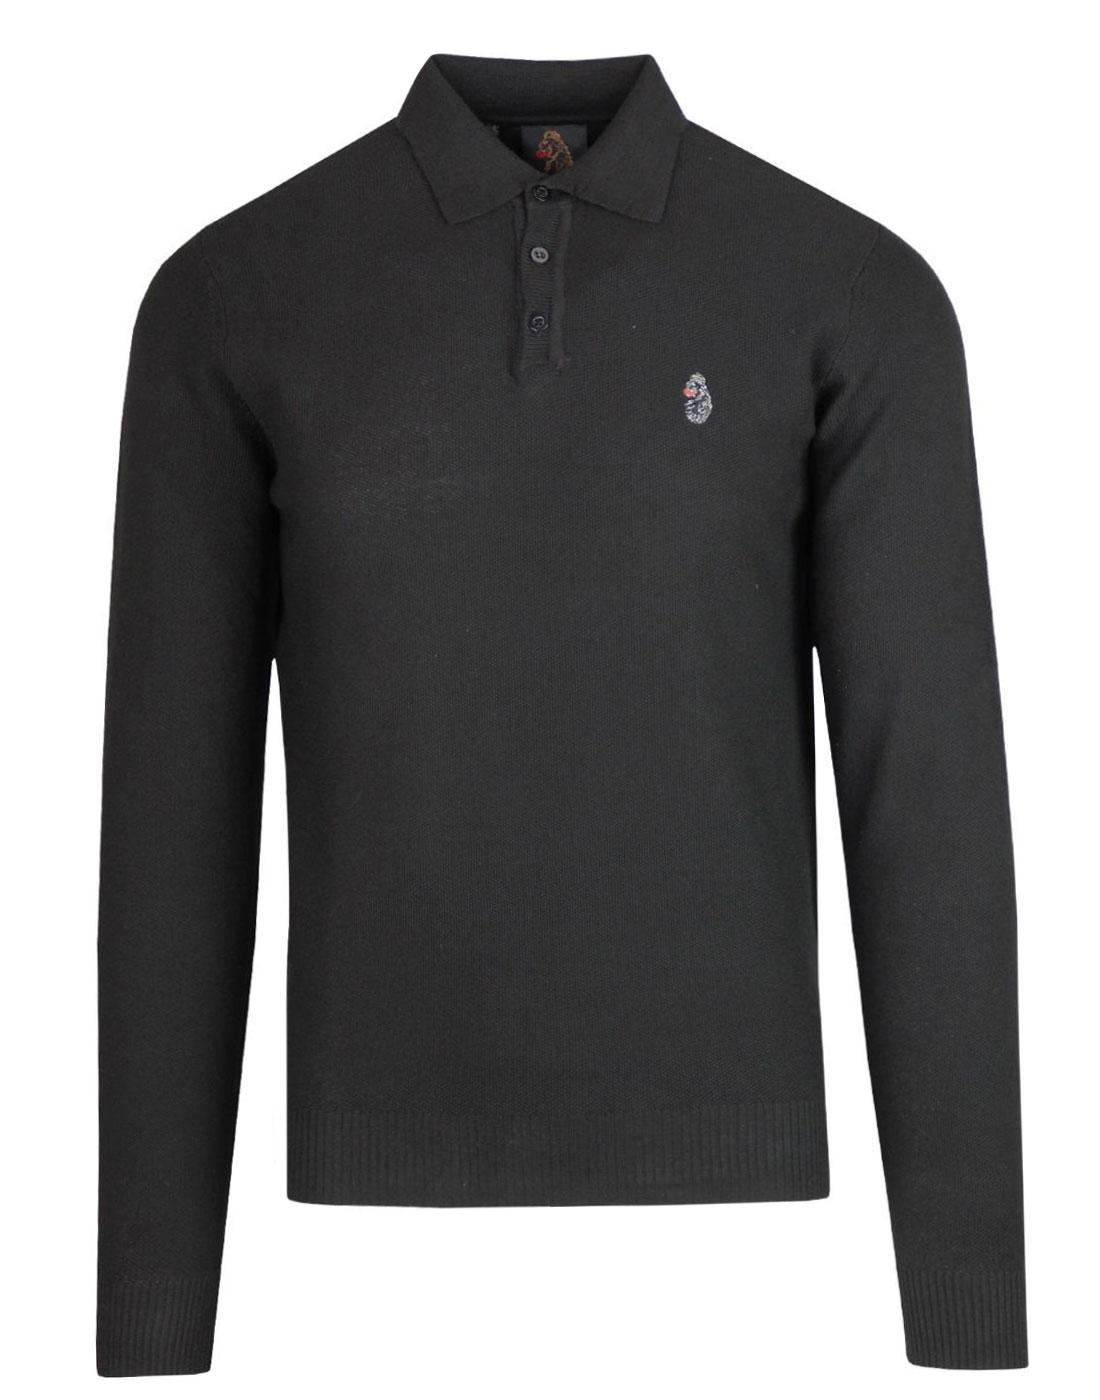 Milk LUKE Men's Retro Mod Knitted Polo Shirt BLACK